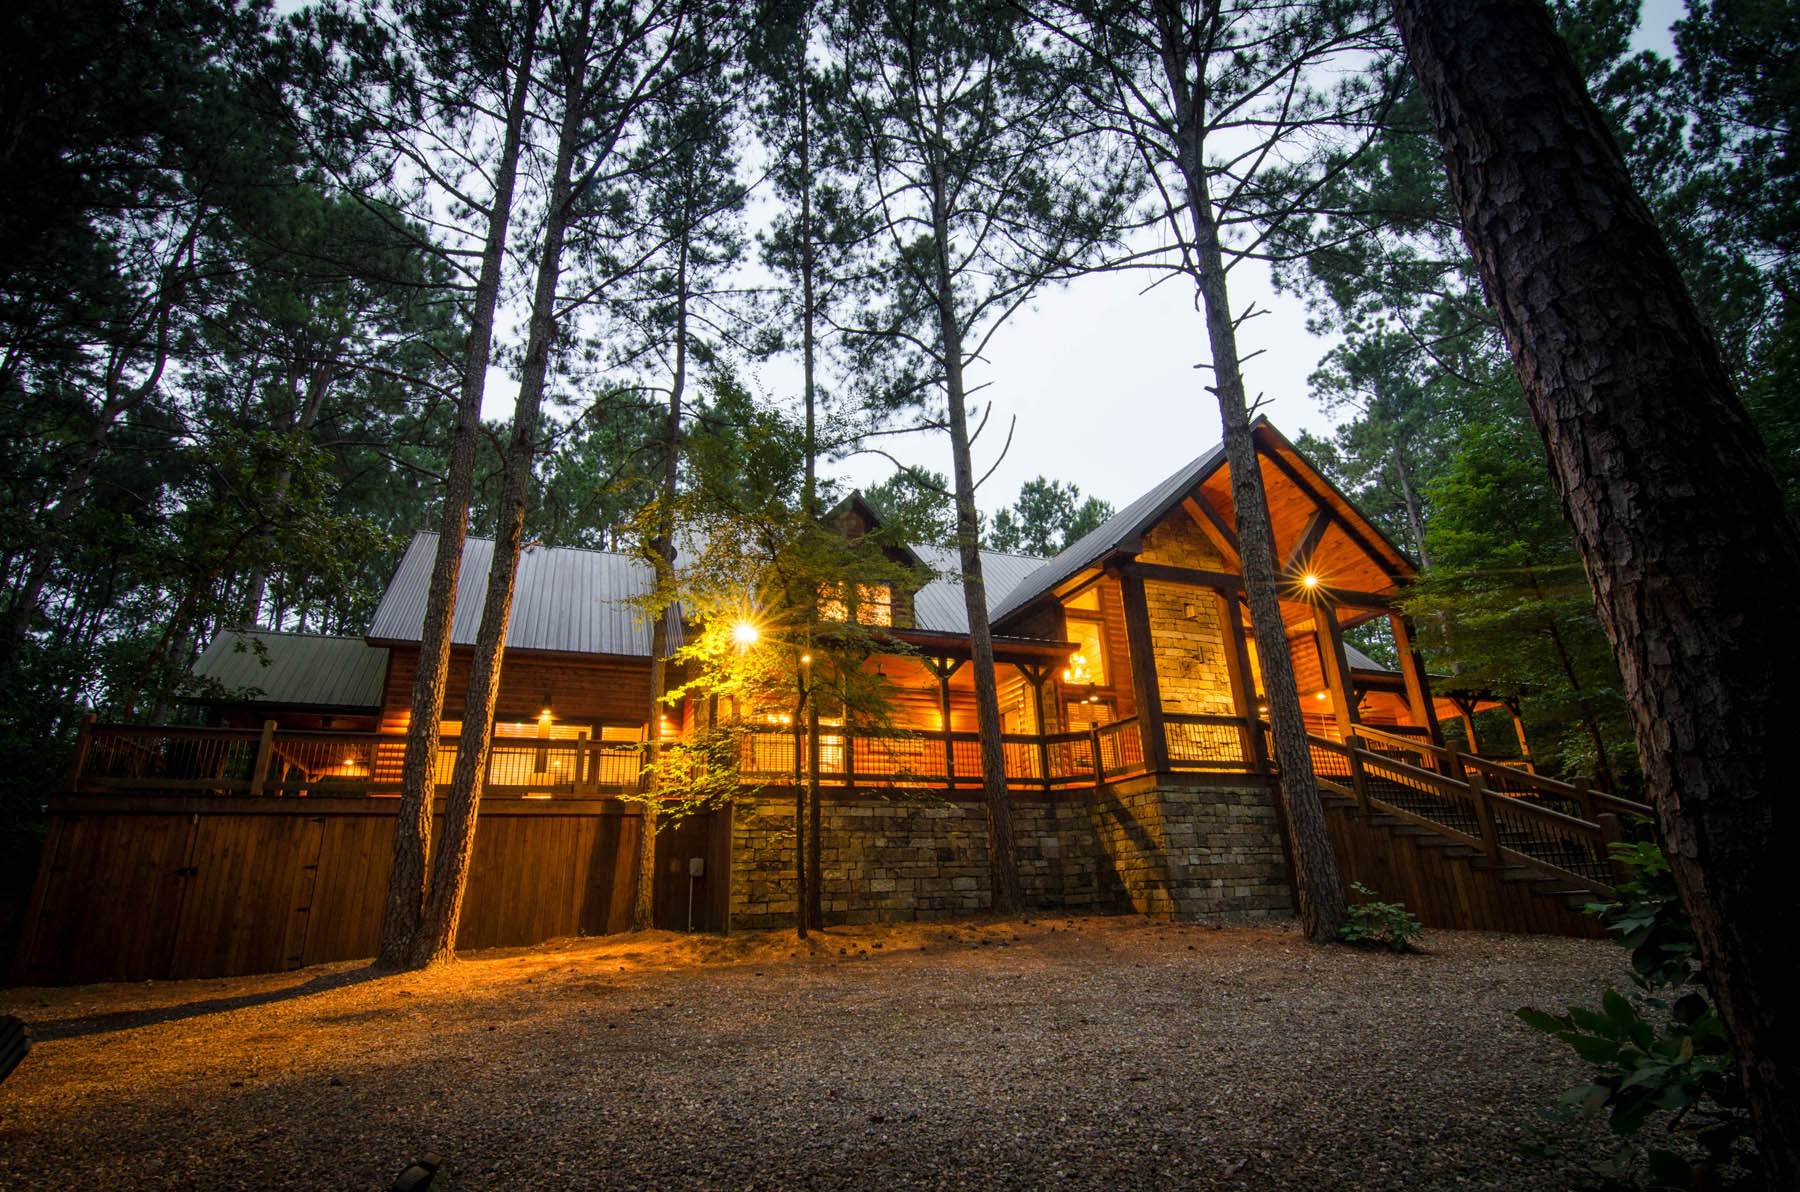 The Great Outdoors cabin exterior.